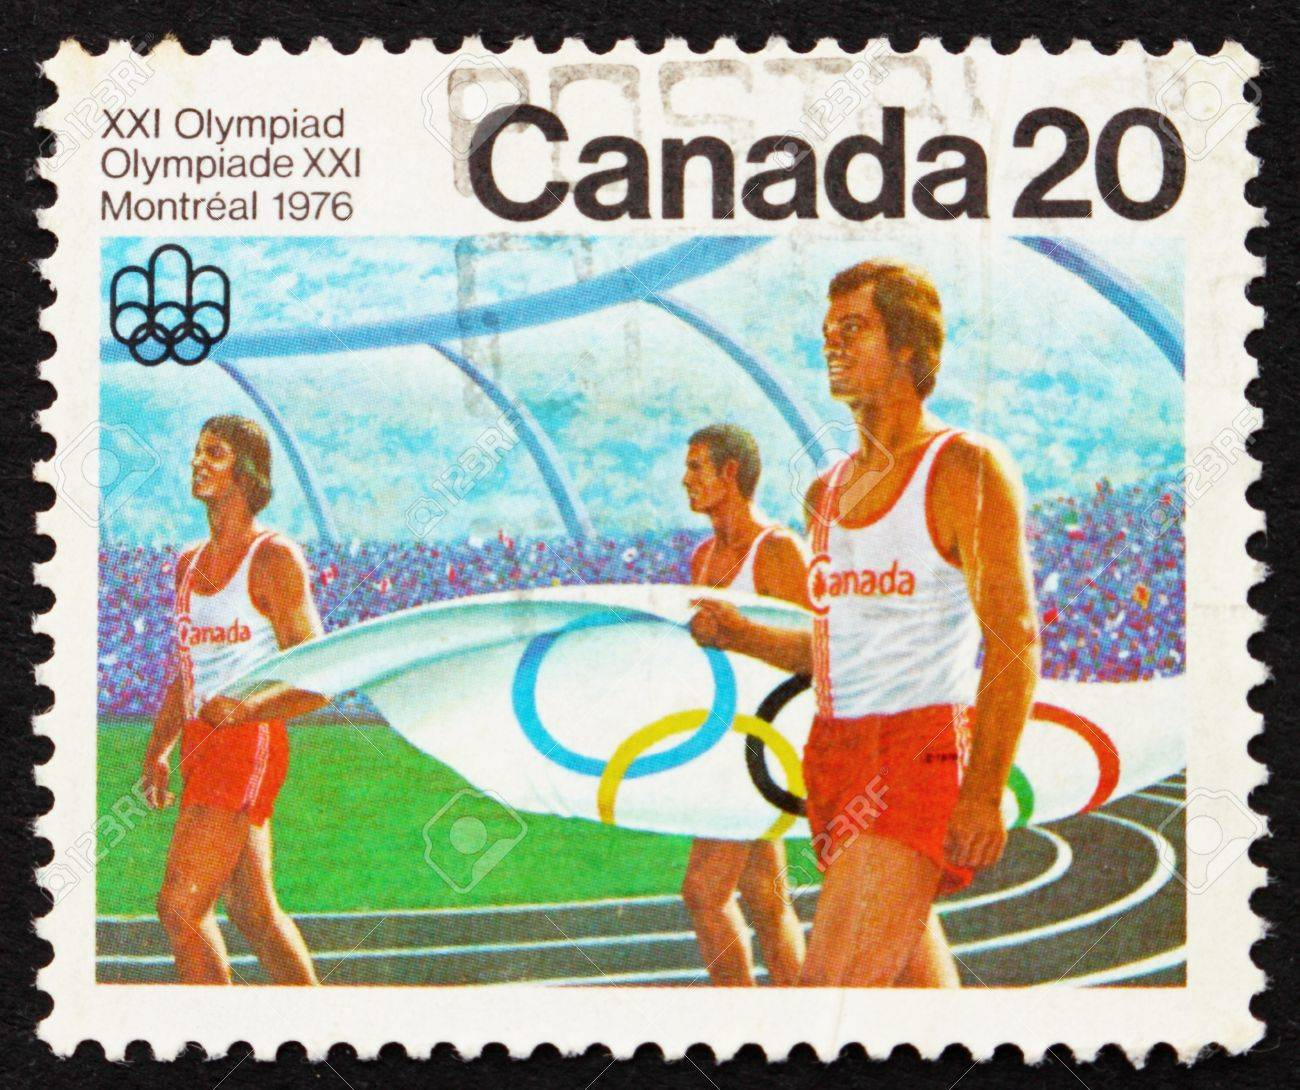 CANADA - CIRCA 1976: a stamp printed in the Canada shows Canadian Athletes carrying Olympic Flag, Montreal 1976, circa 1976 Stock Photo - 15942846